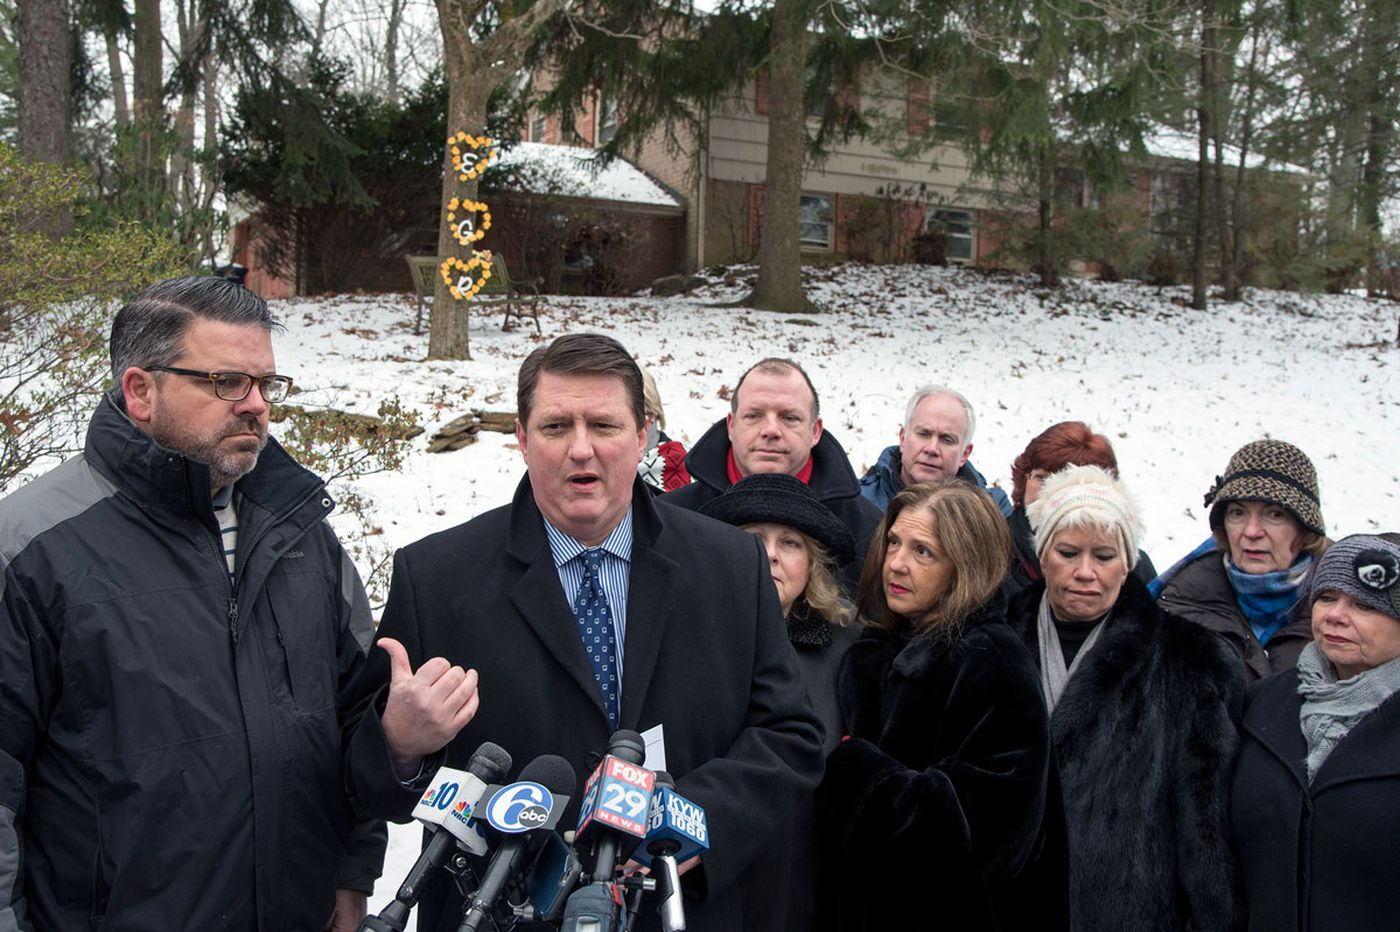 Montco house where ex-Penn prof Rafael Robb killed his wife is for sale